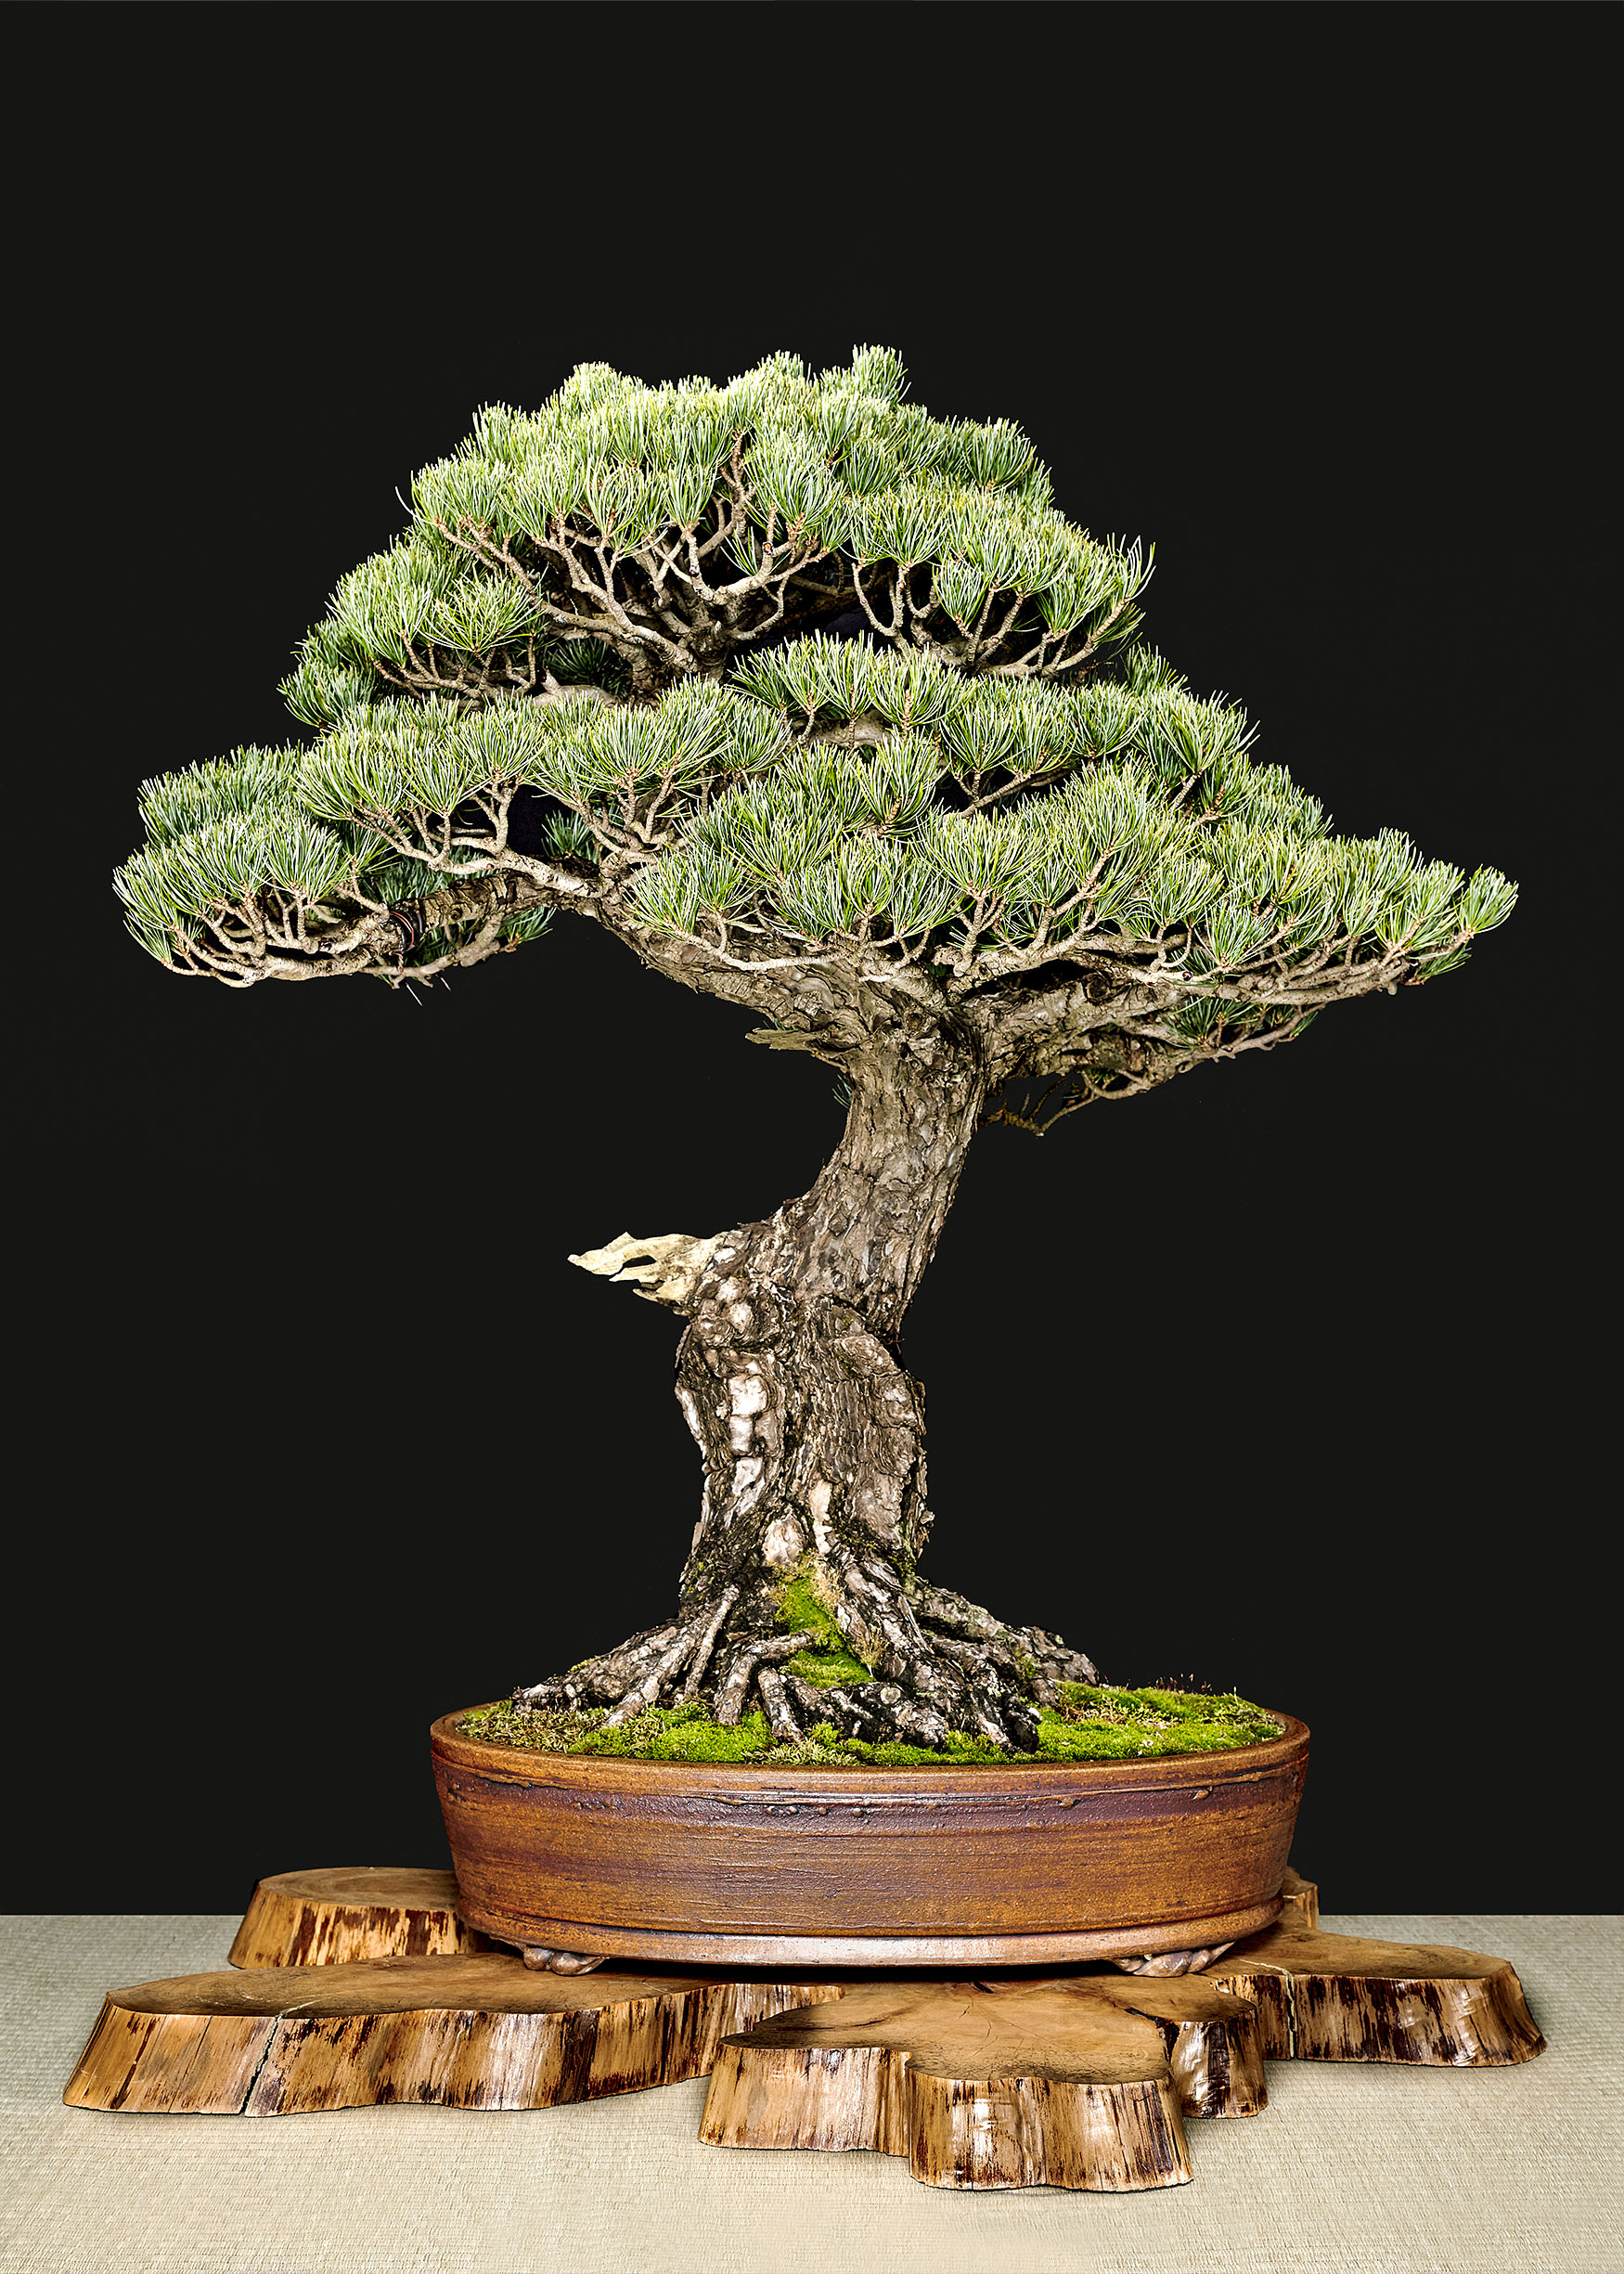 Bonsai Trees Archives - Bonsai Learning Center